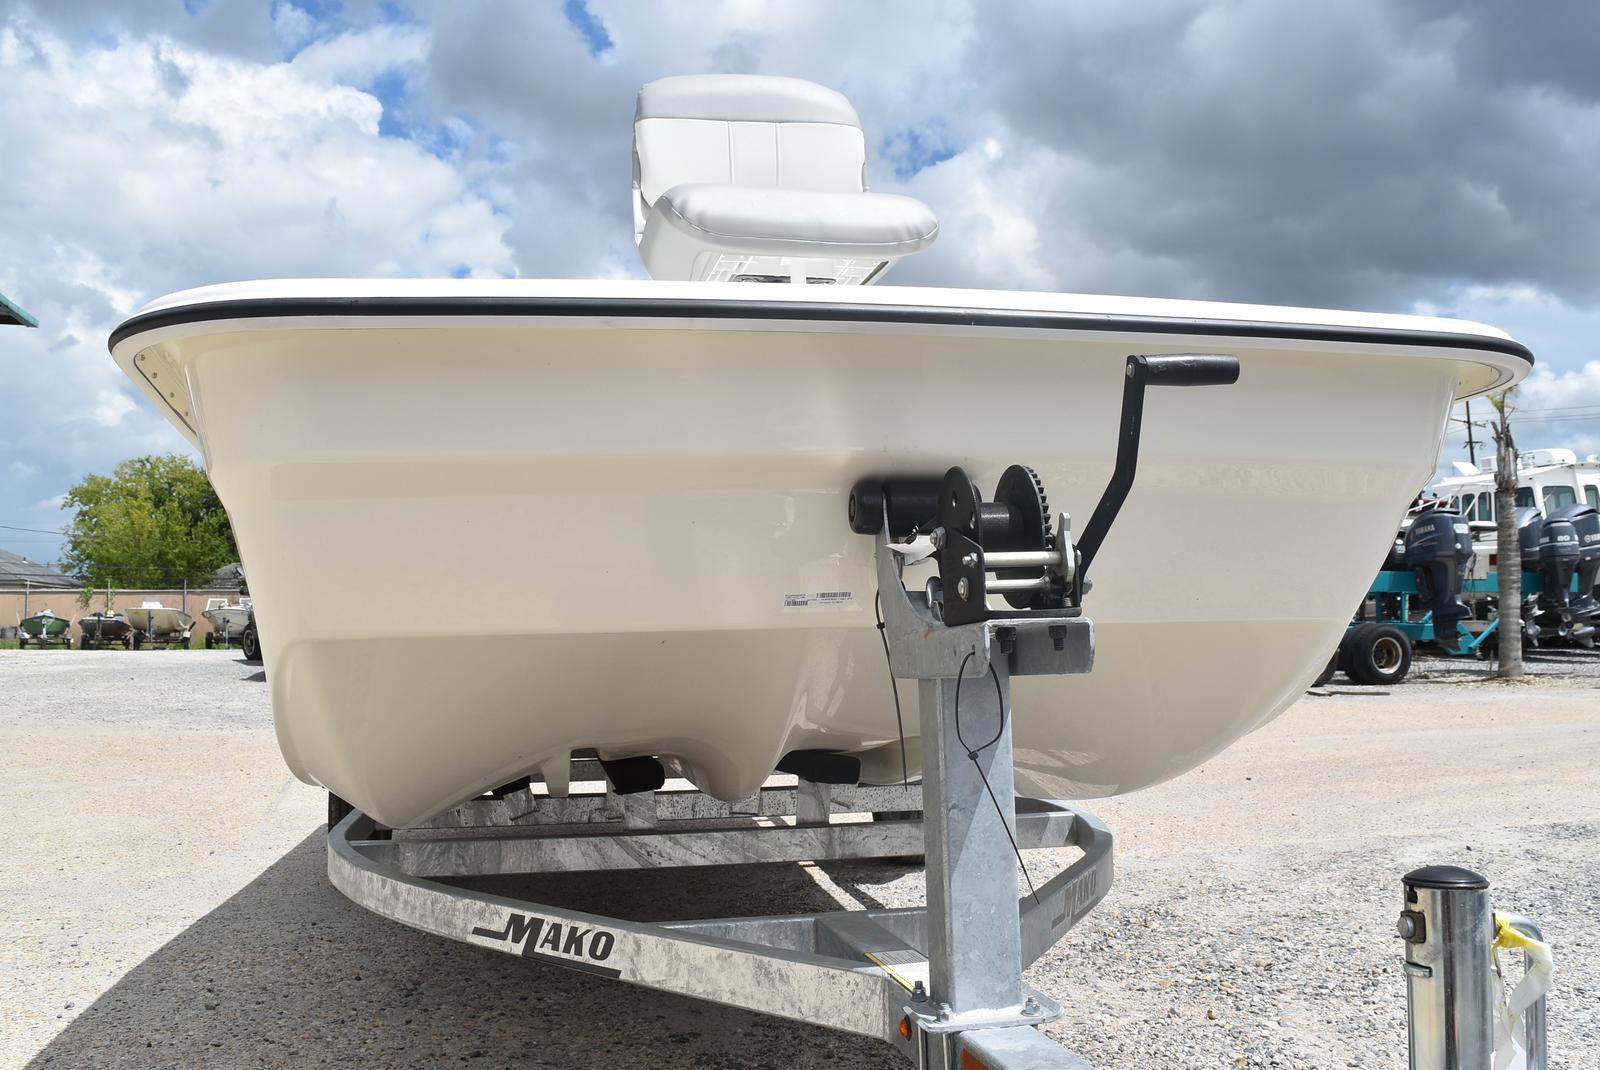 2020 Mako boat for sale, model of the boat is Pro Skiff 17, 75 ELPT & Image # 370 of 702